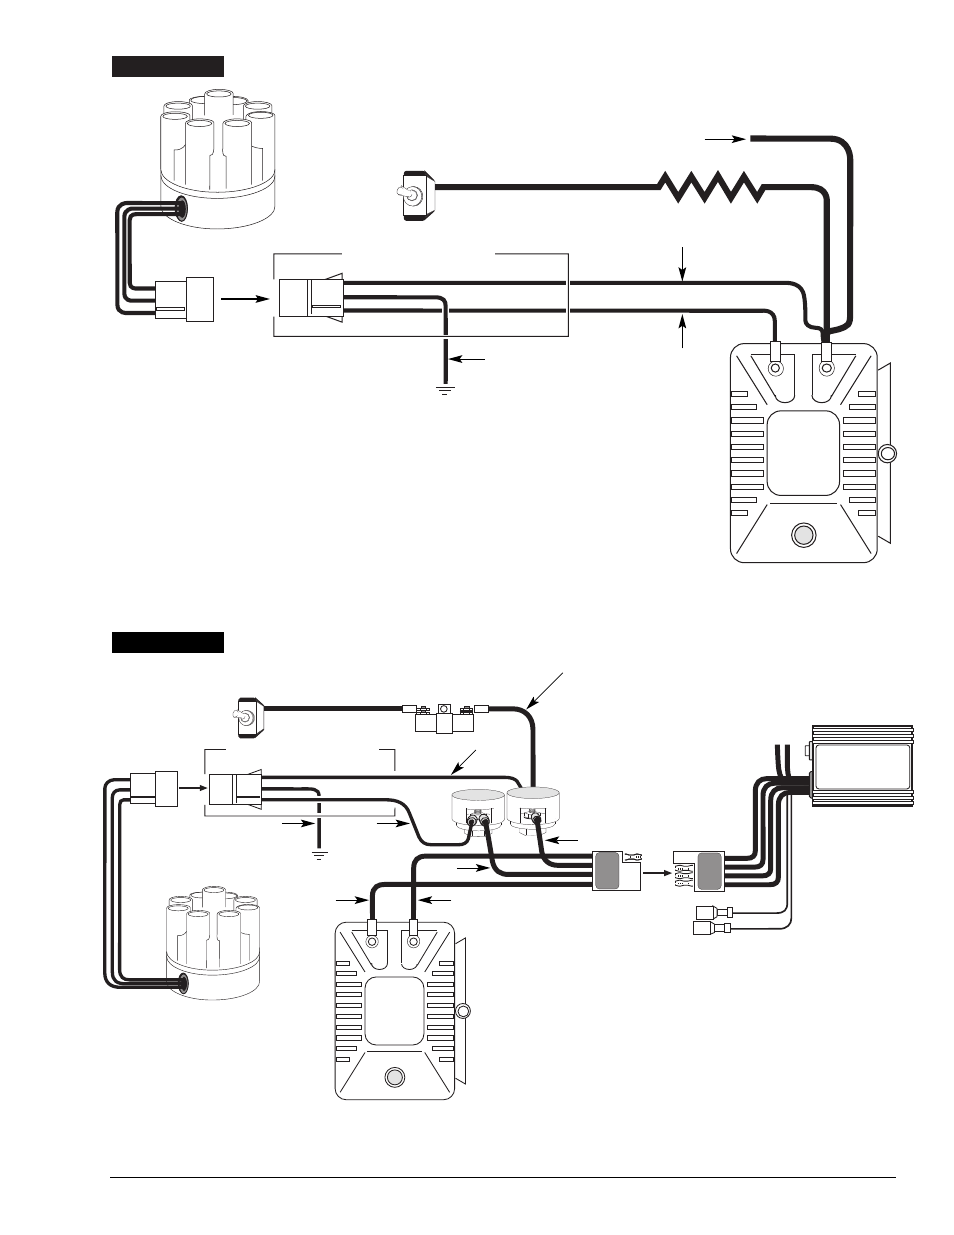 Coil | Mallory Ignition Mallory UNILITE DISTRIBUTOR User Manual | Page 3 /  13